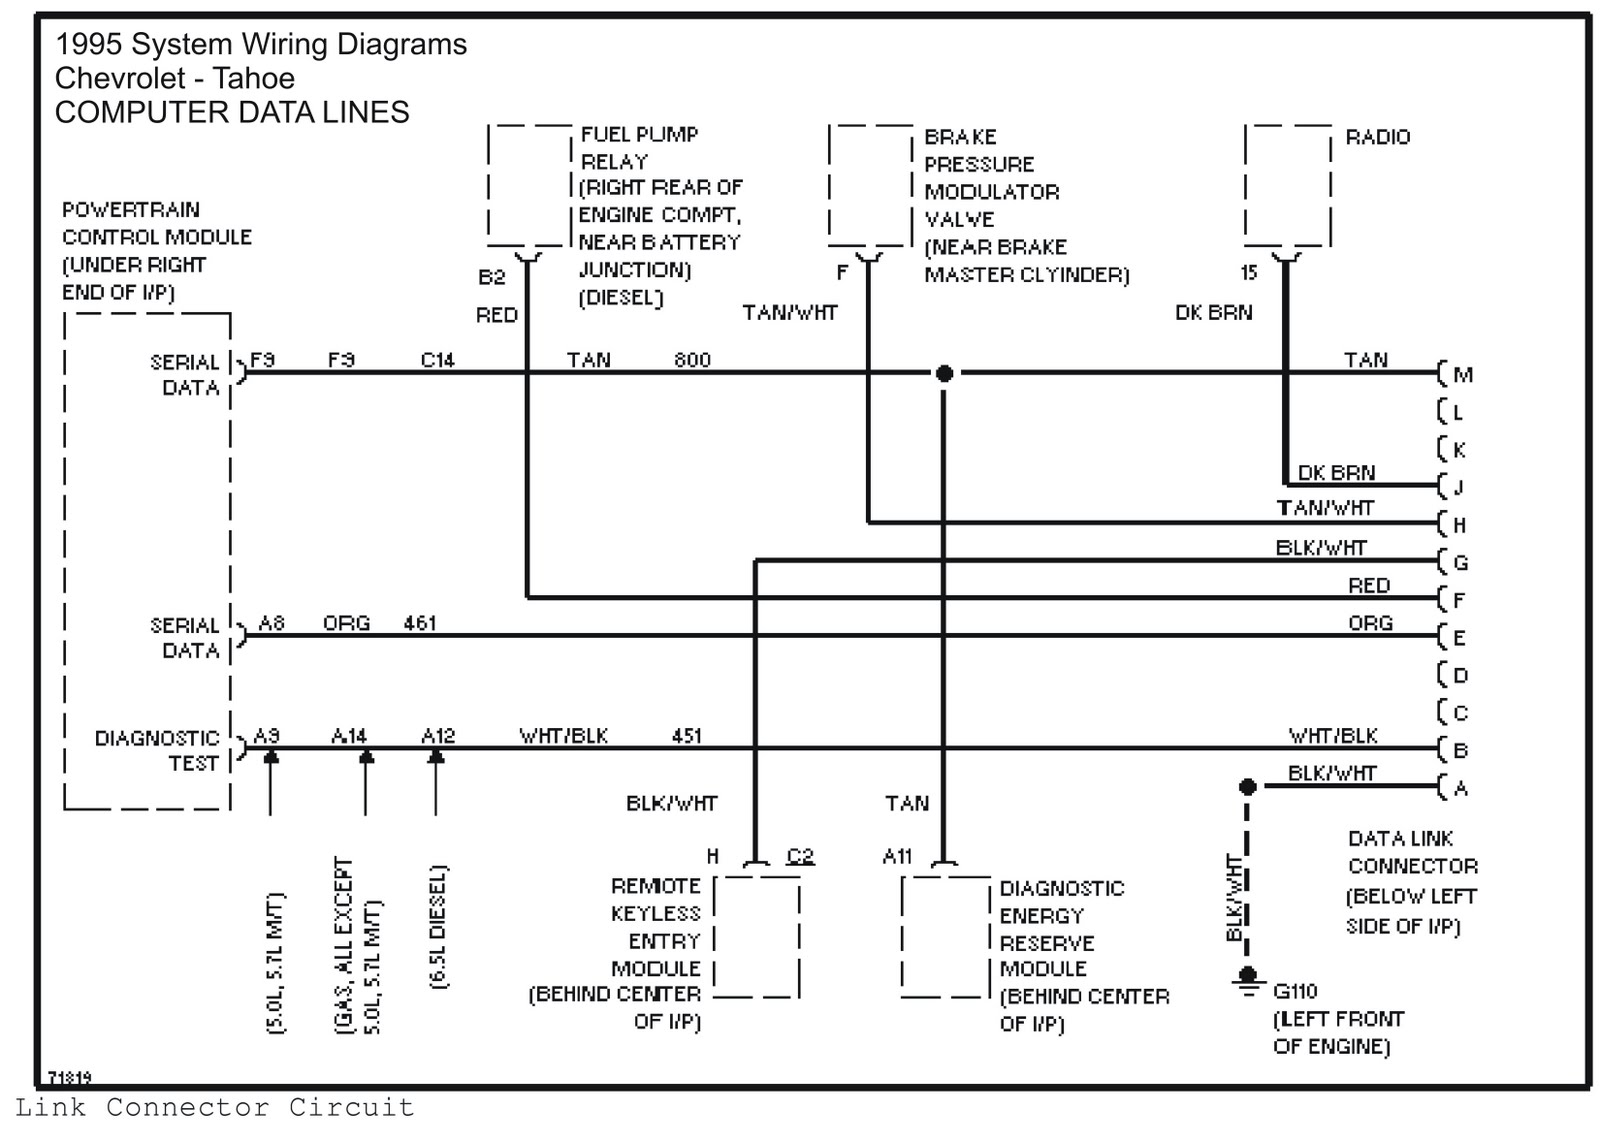 Chevy Silverado Wiring Diagram Http Chevroletforumcom Forum Express